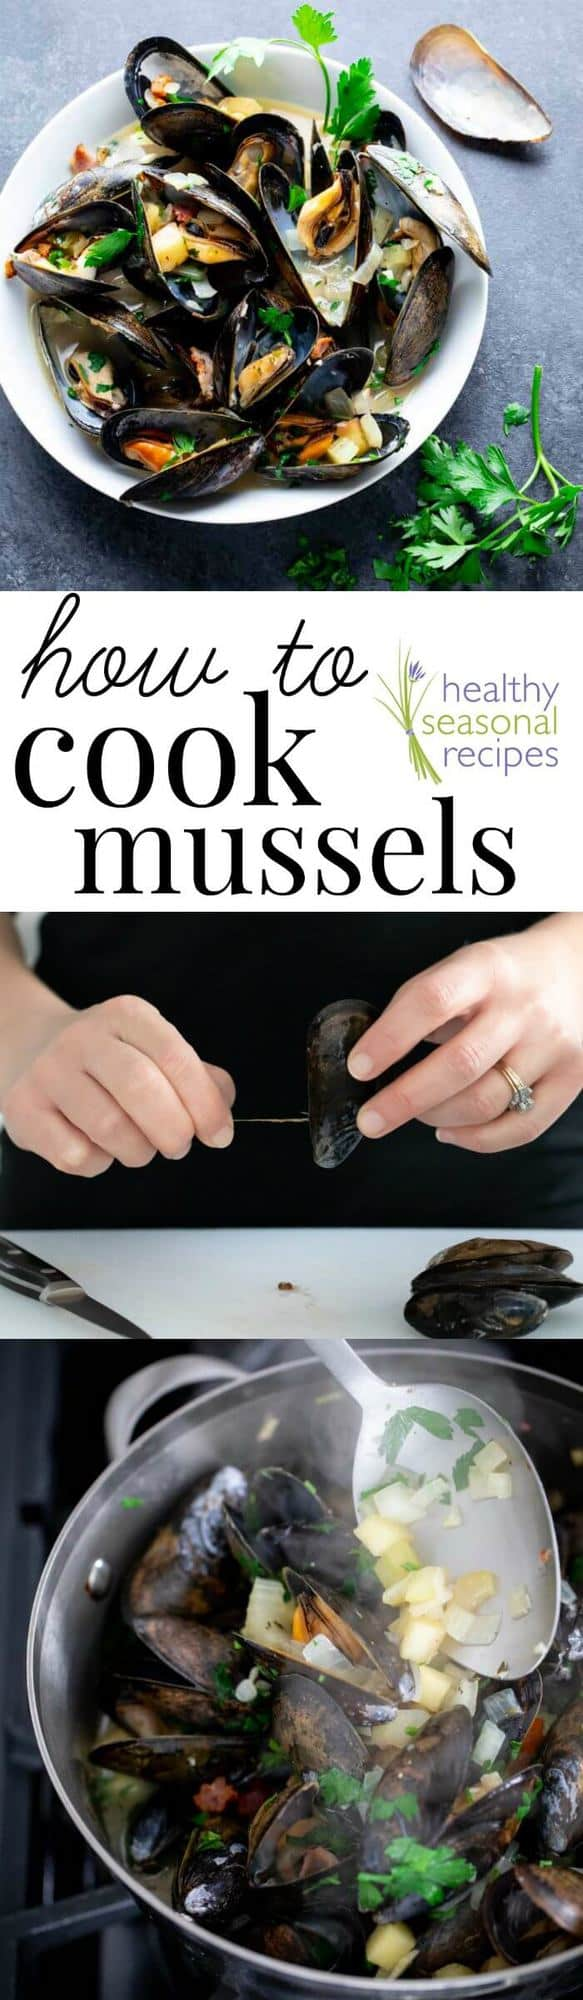 How to Cook Mussels and a recipe for Mussels with Apples and Bacon on Healthy Seasonal Recipes #mussels #seafood #lent #christmaseve